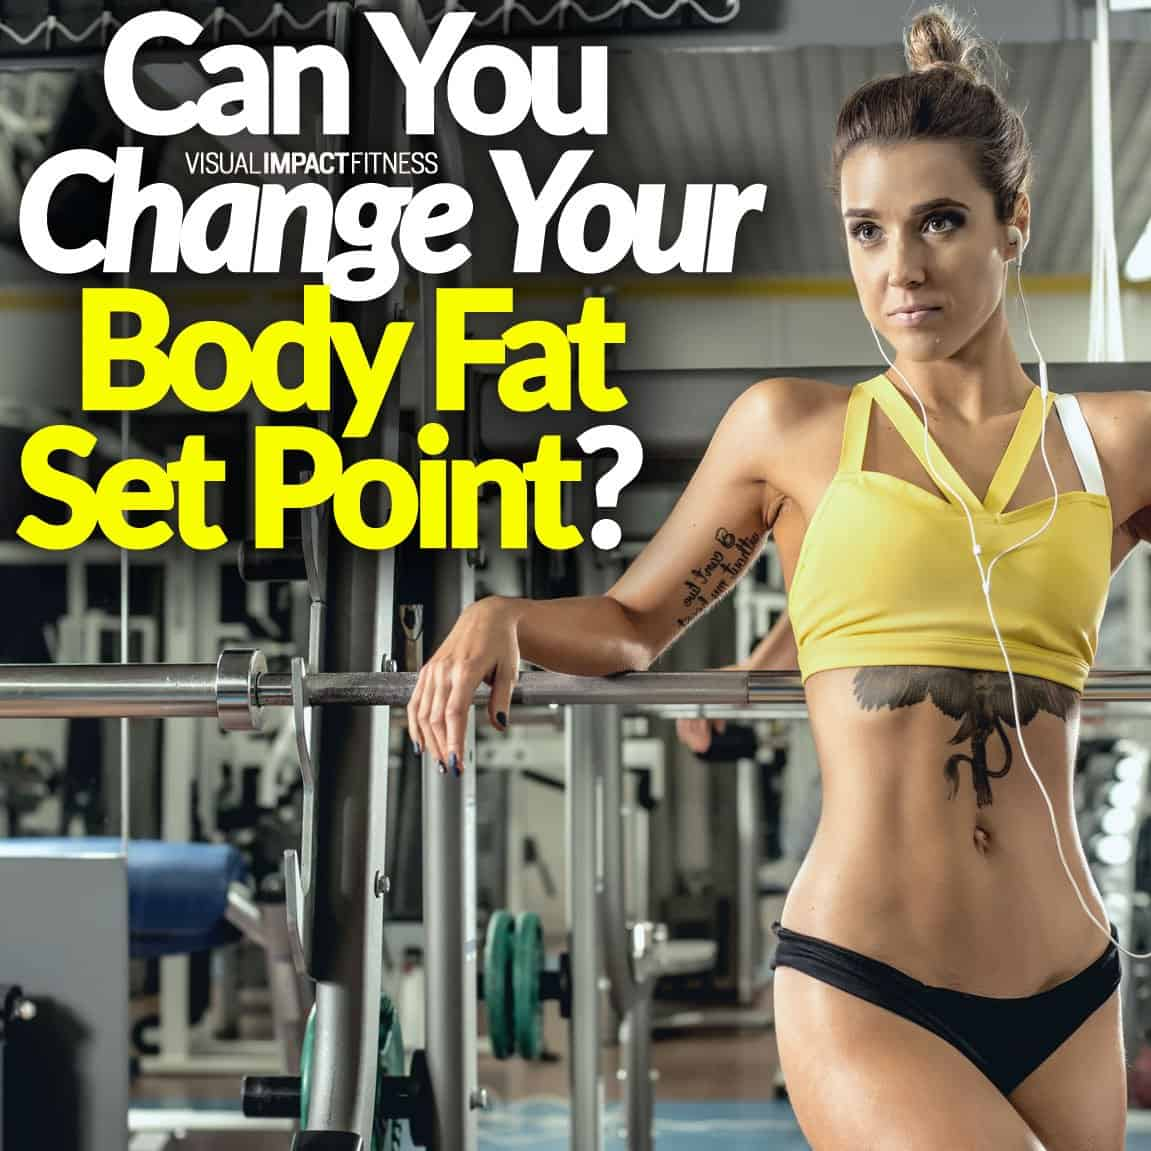 Can You Change Your Body Fat Set Point